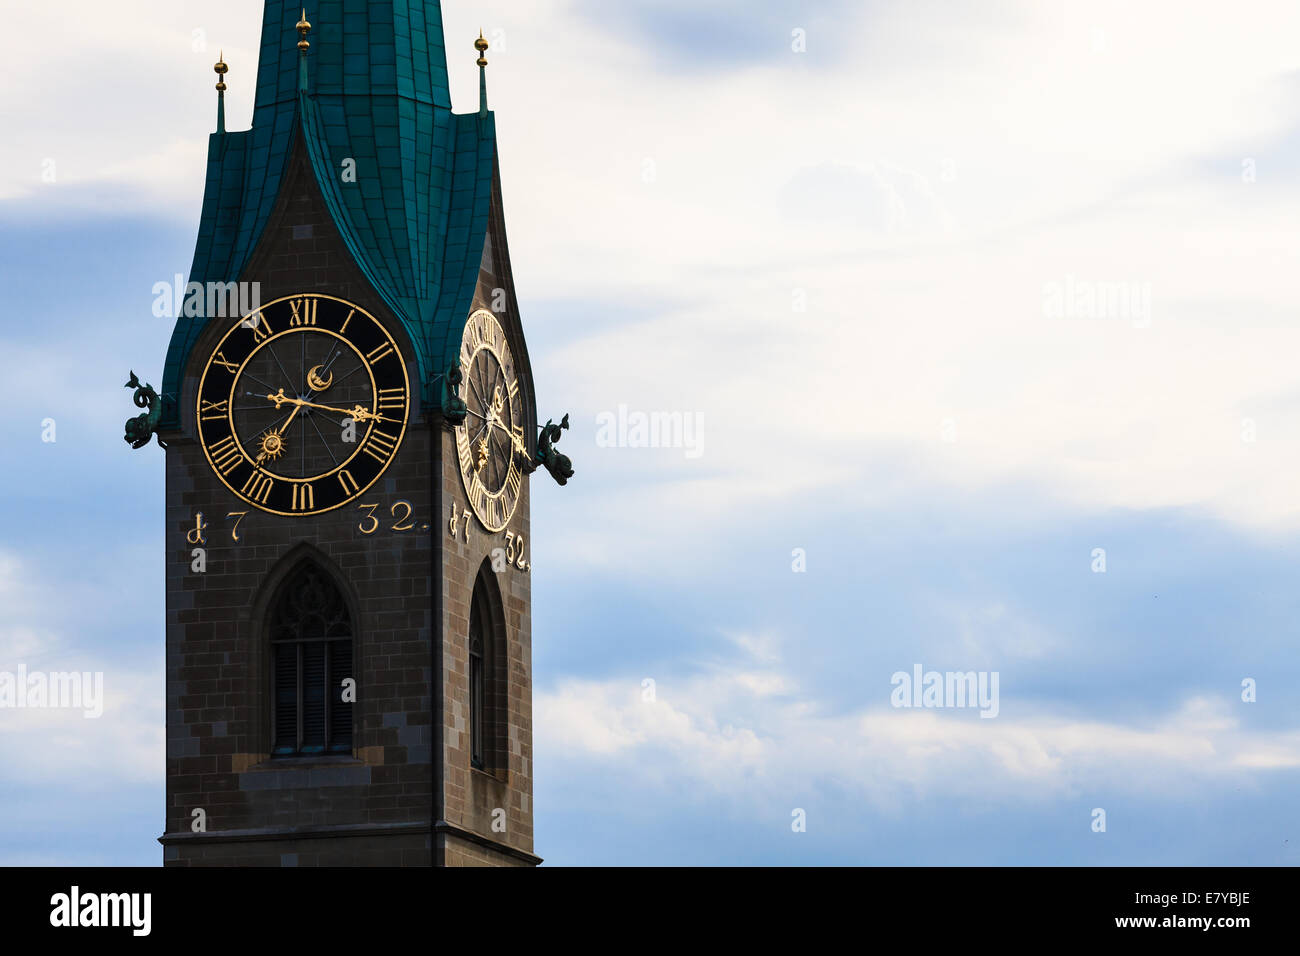 Zurich landmarks: the St. Peter Church, the Lady Minster (German: Fraumunster) - Stock Image